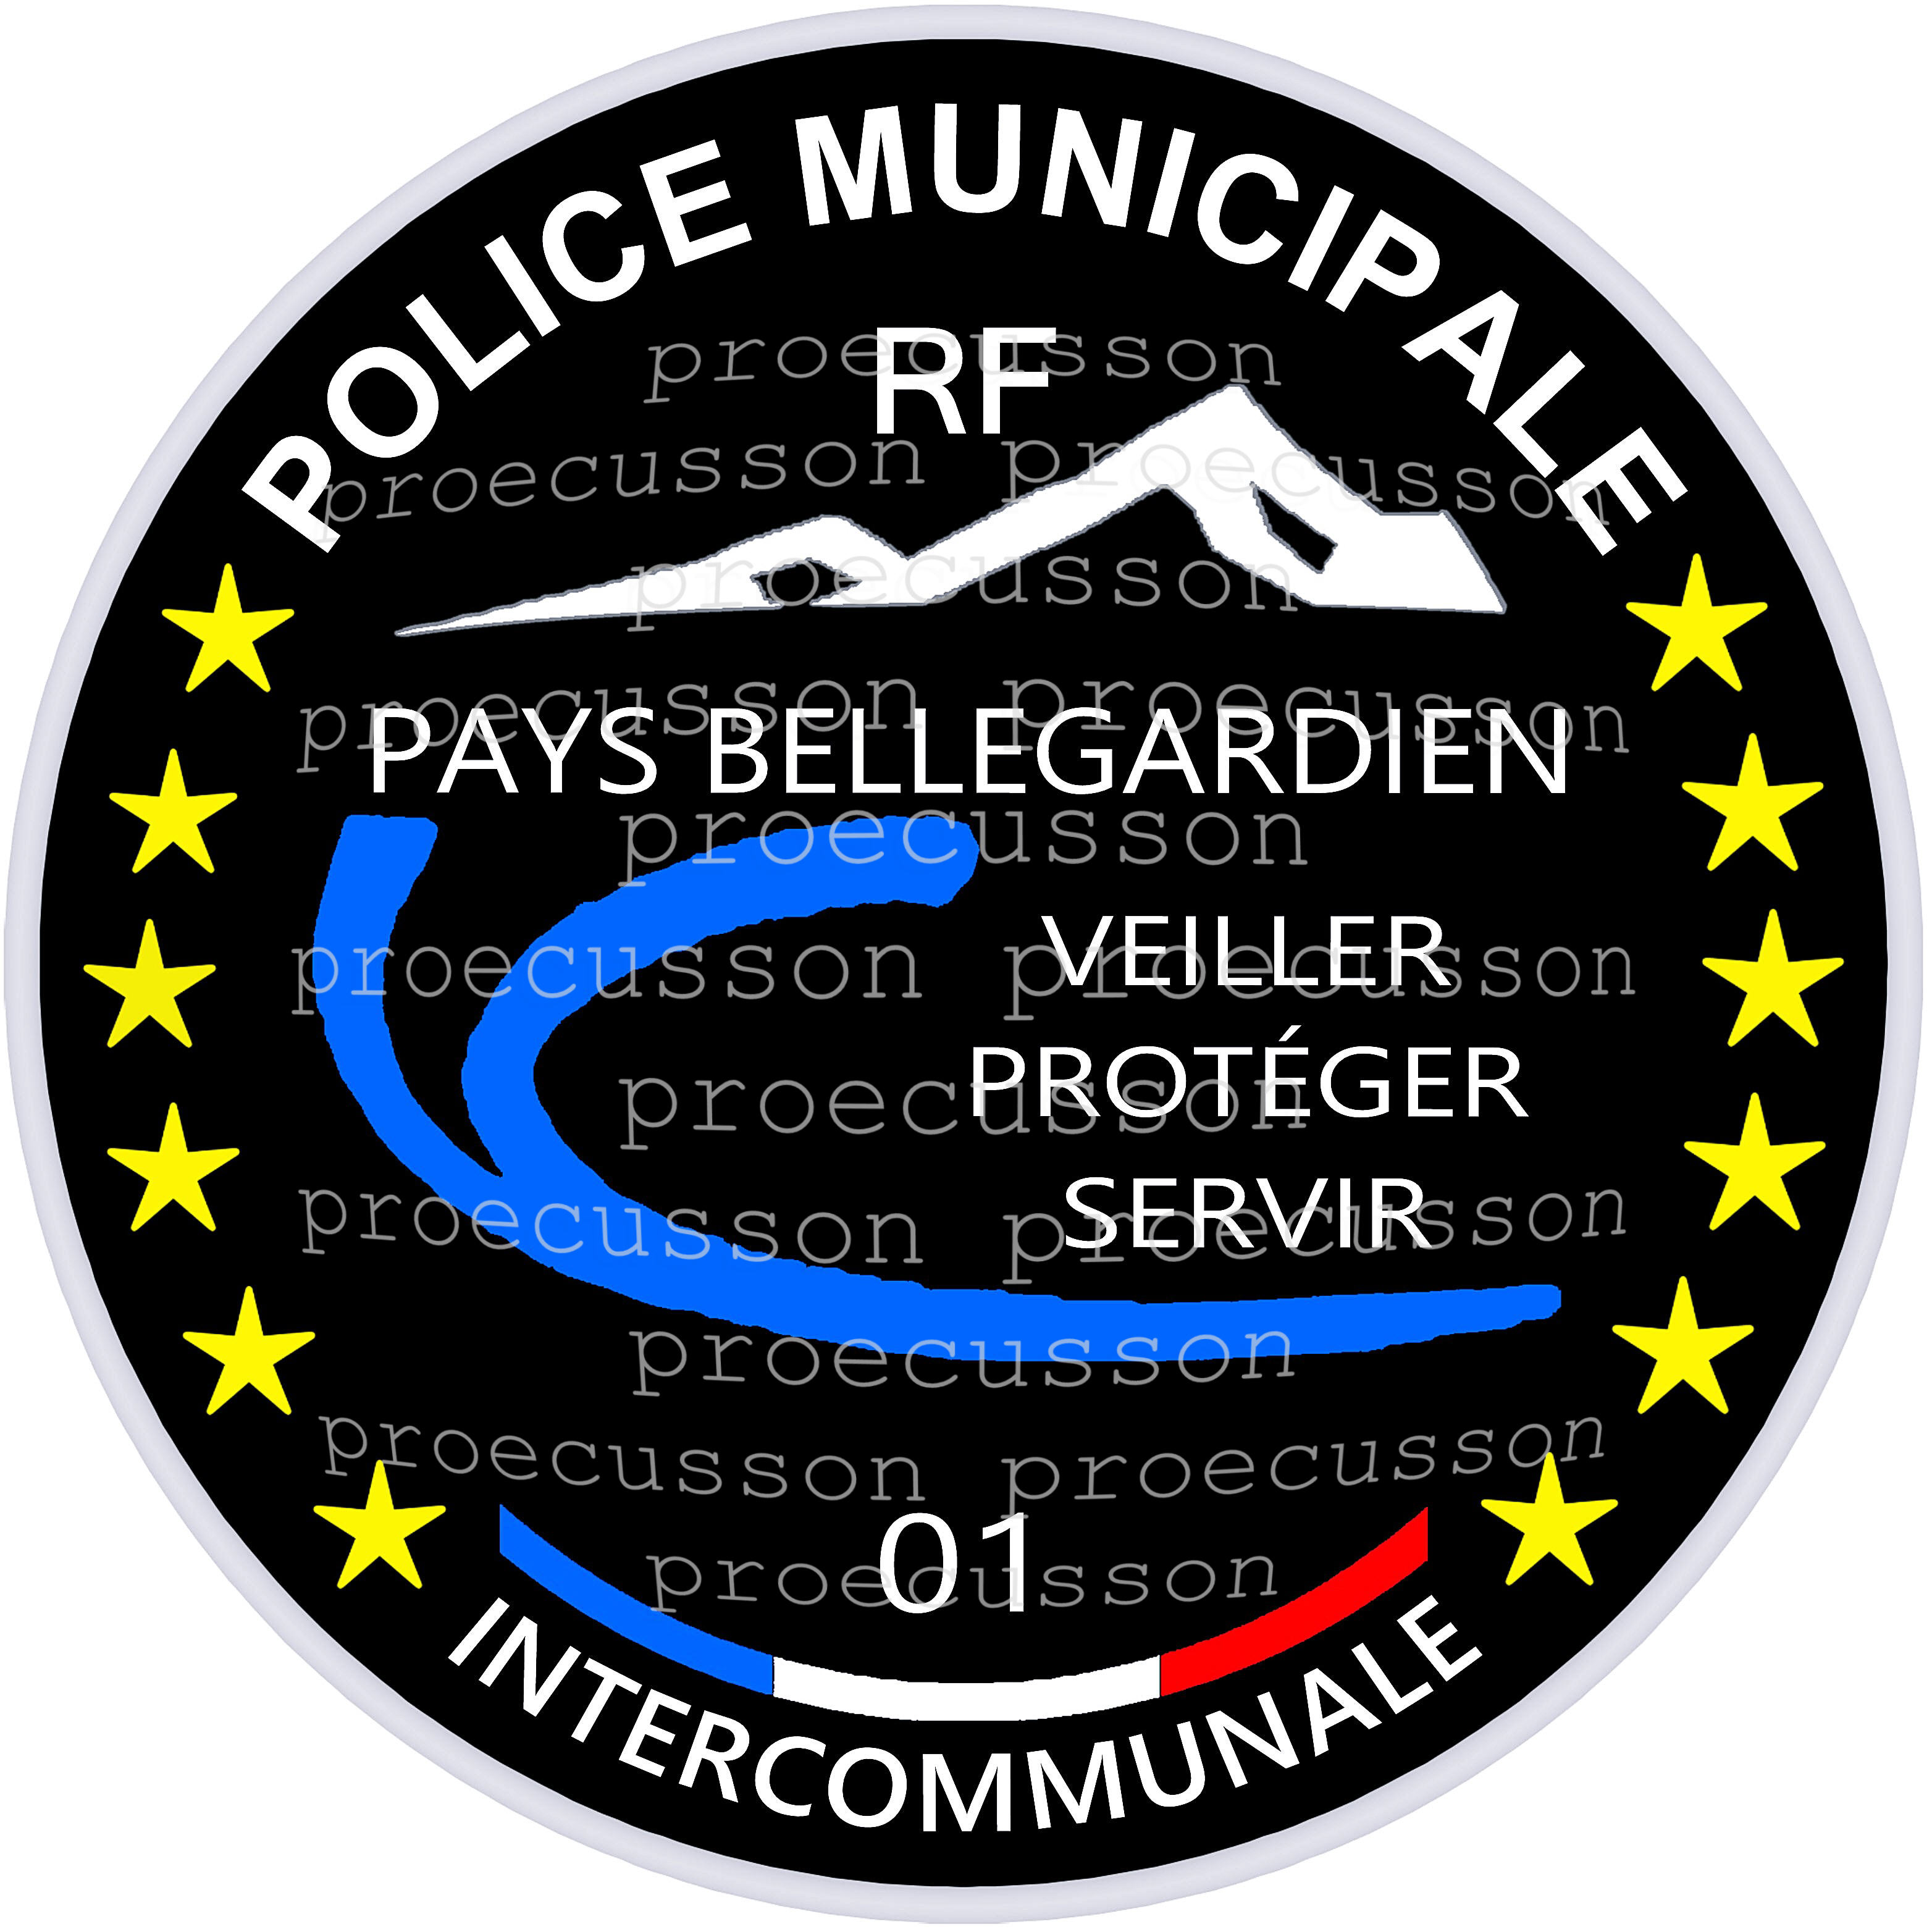 POLICE MUNICIPALE INTERCOMMUNALE PAYS BELLEGARDIEN